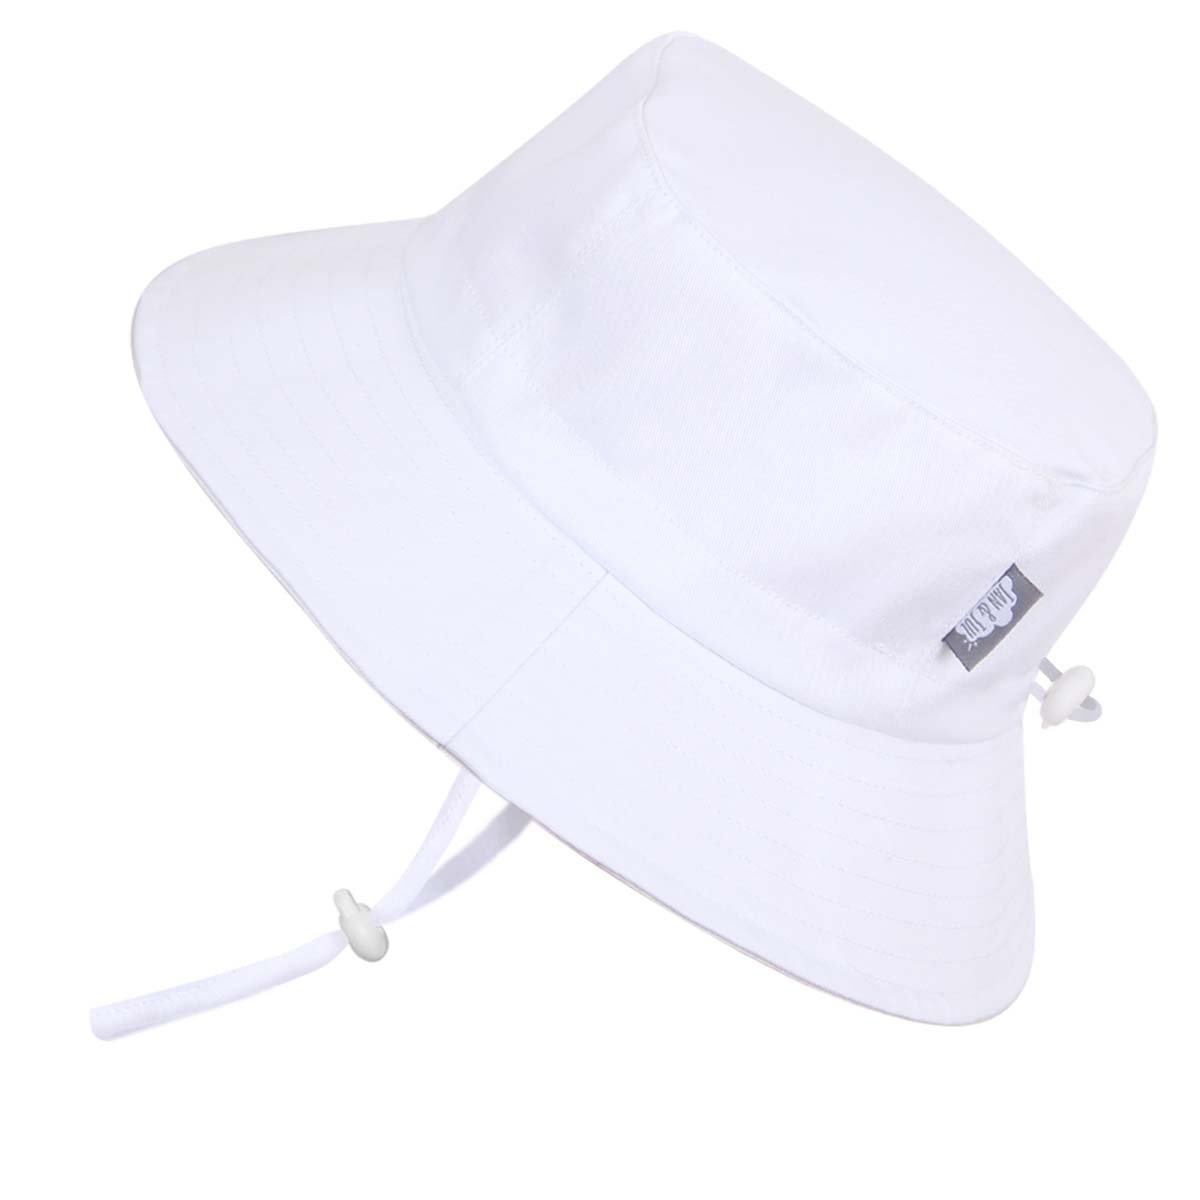 Toddler 50+ UPF Sun Protection Hat, Size Adjustable Breathable With Chin Strap(M: 9m - 3Y, Anchor) Twinklebelle 15-44M